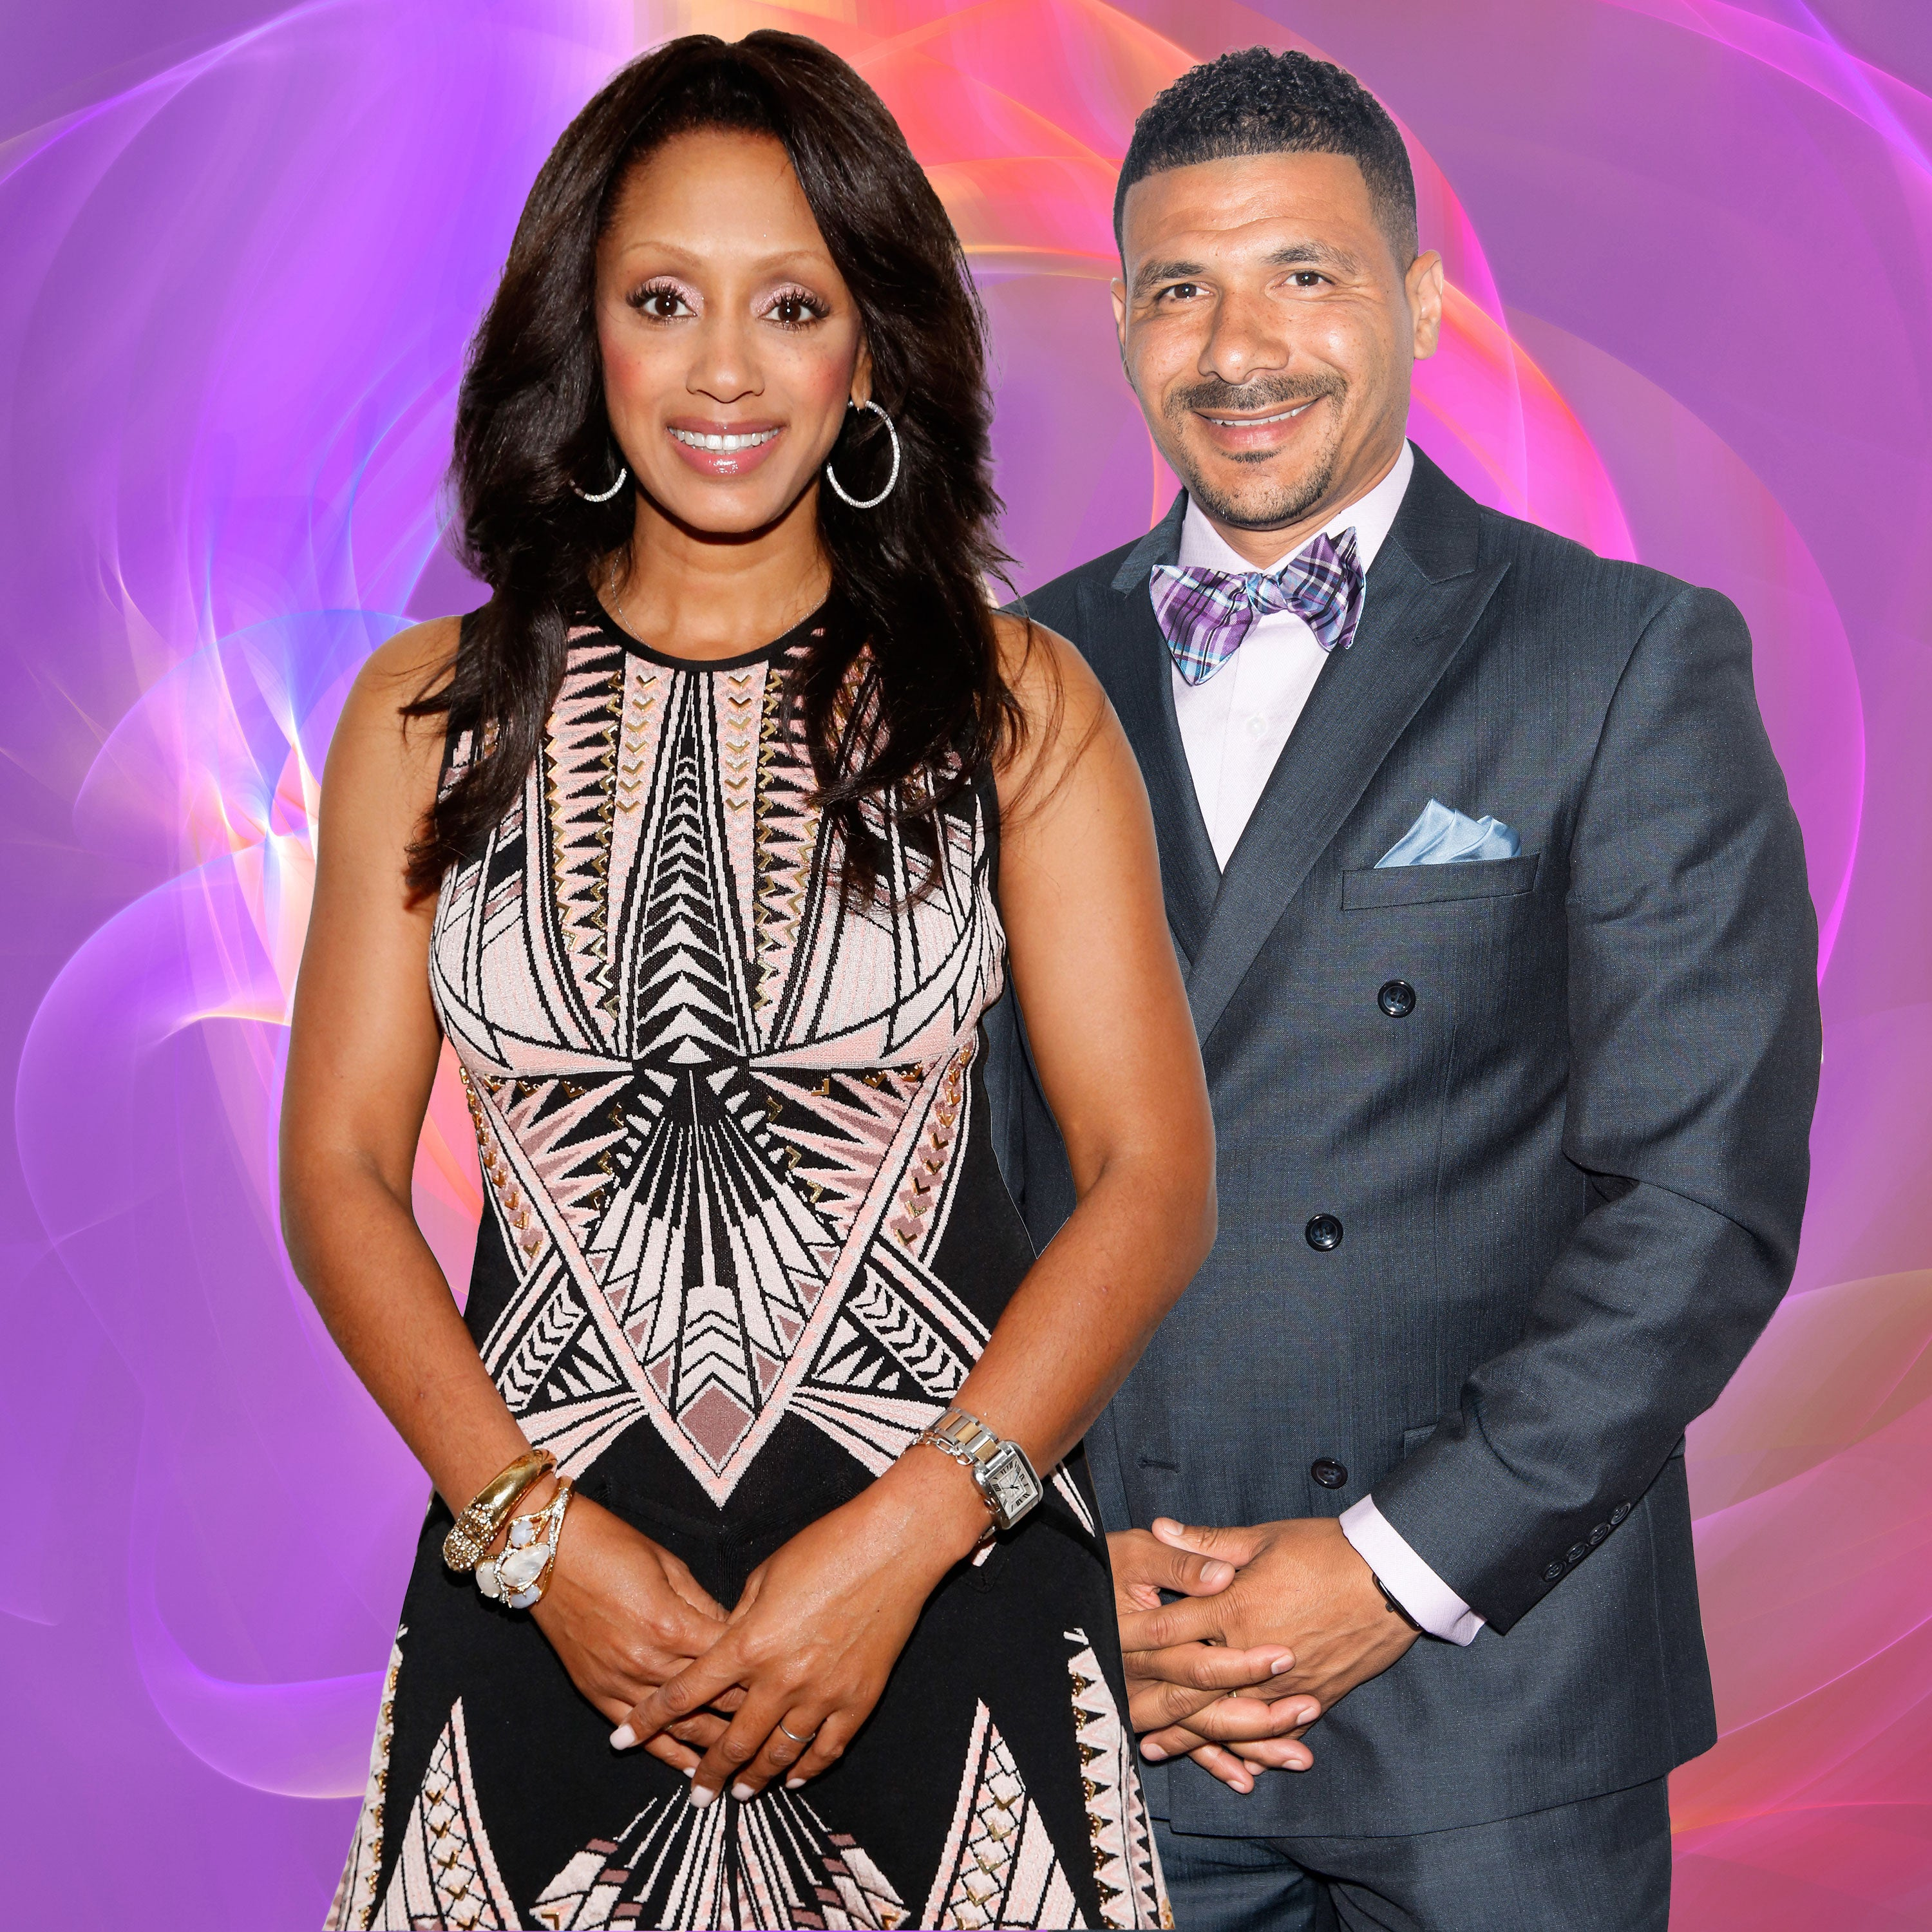 Malaak Compton-Rock and Dr Steve Perry Partner to Take American Youth To Volunteer in South Africa